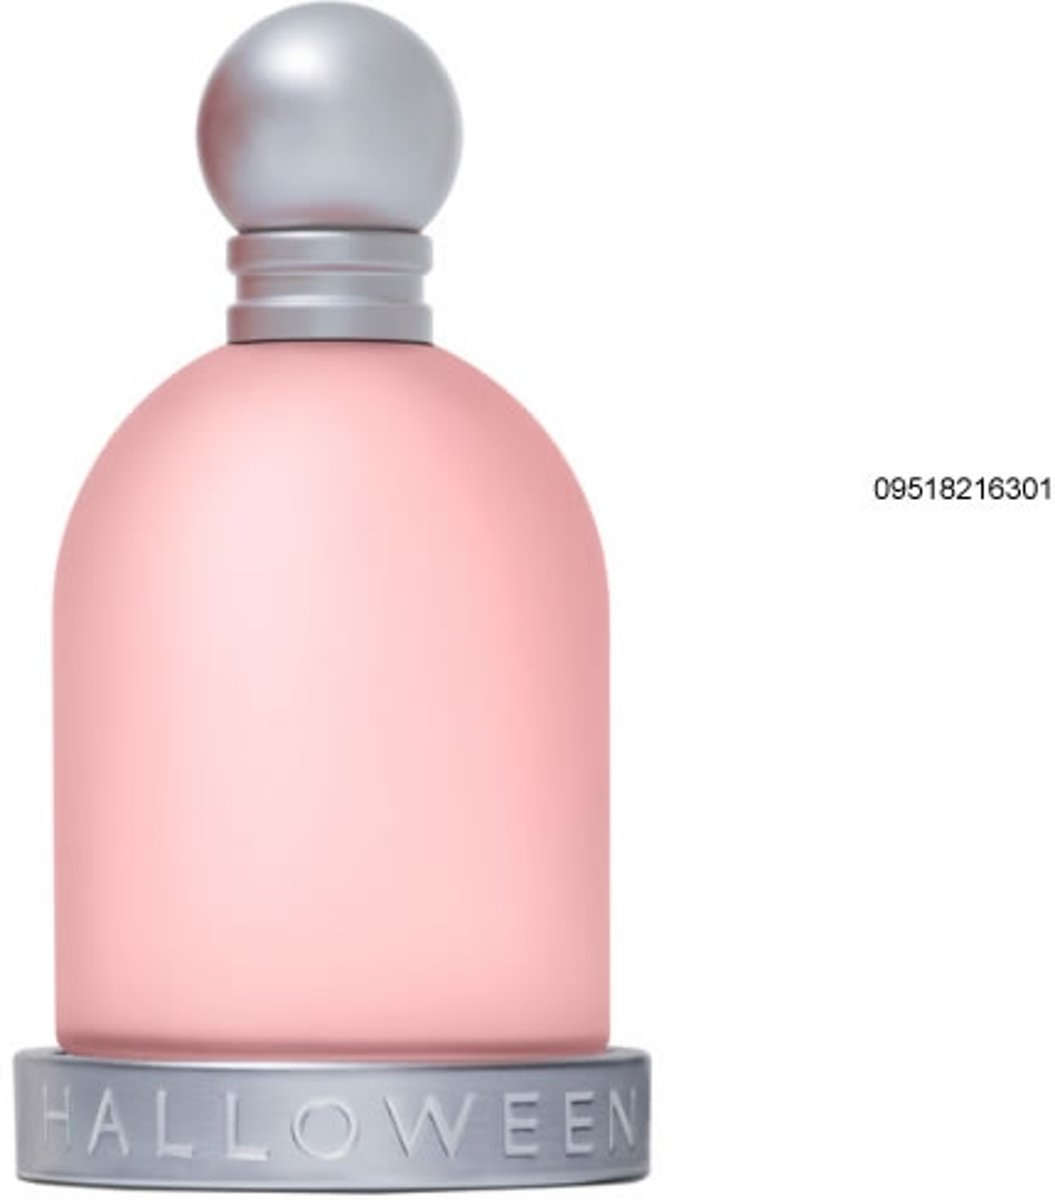 Halloween Eau de Toilette Halloween Magic Spray 30ml